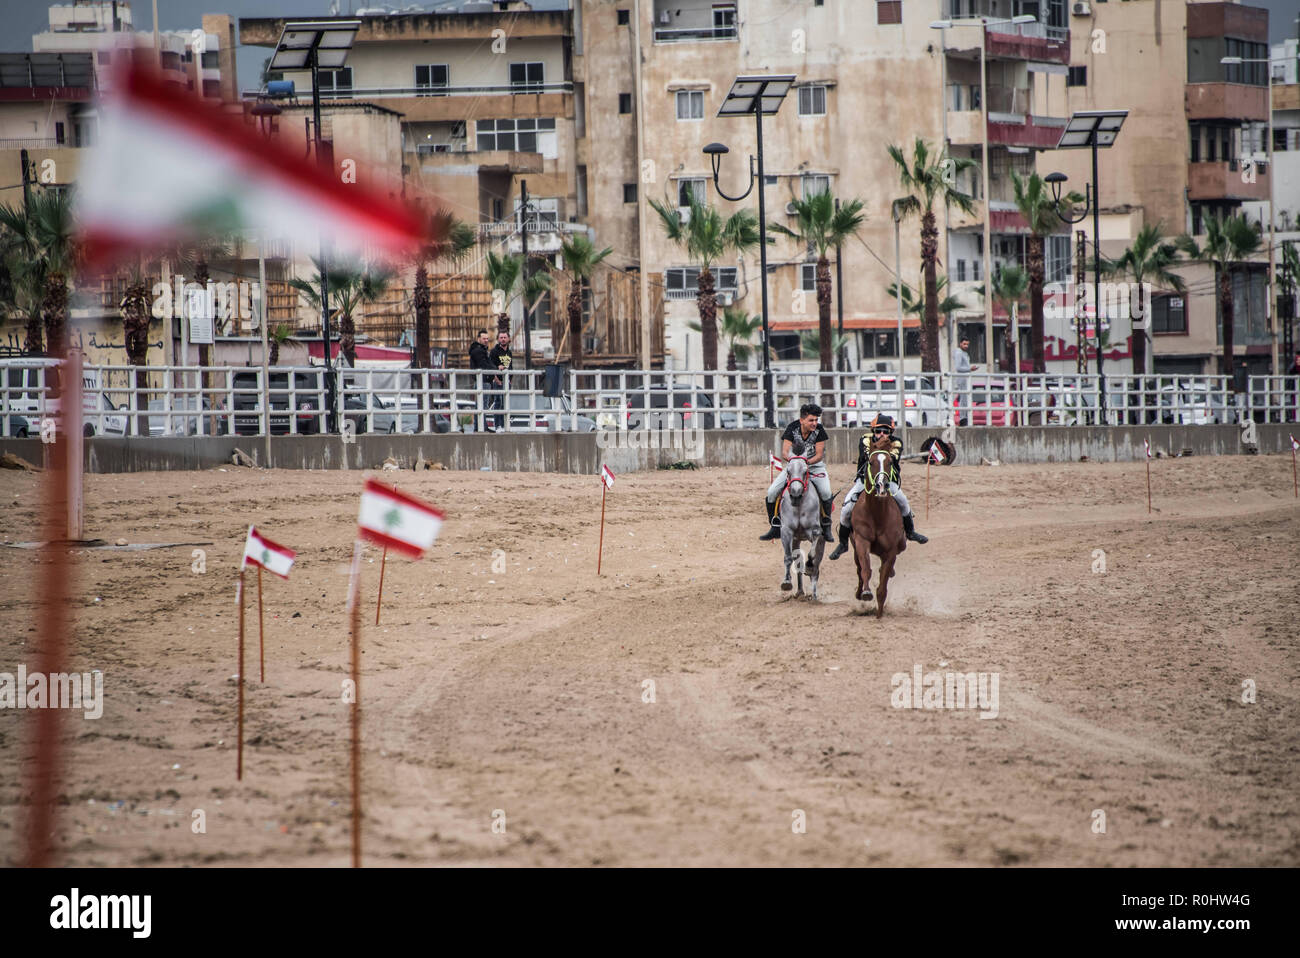 November 4, 2018 - Saida, Lebanon - Jockeys are seen competing during the horse race..Horse race at the Saida festival for speed, held on a public town beach, organised by a joint effort from the municipality of Sidon and the Ride-Along Club. (Credit Image: © Elizabeth Fitt/SOPA Images via ZUMA Wire) - Stock Image